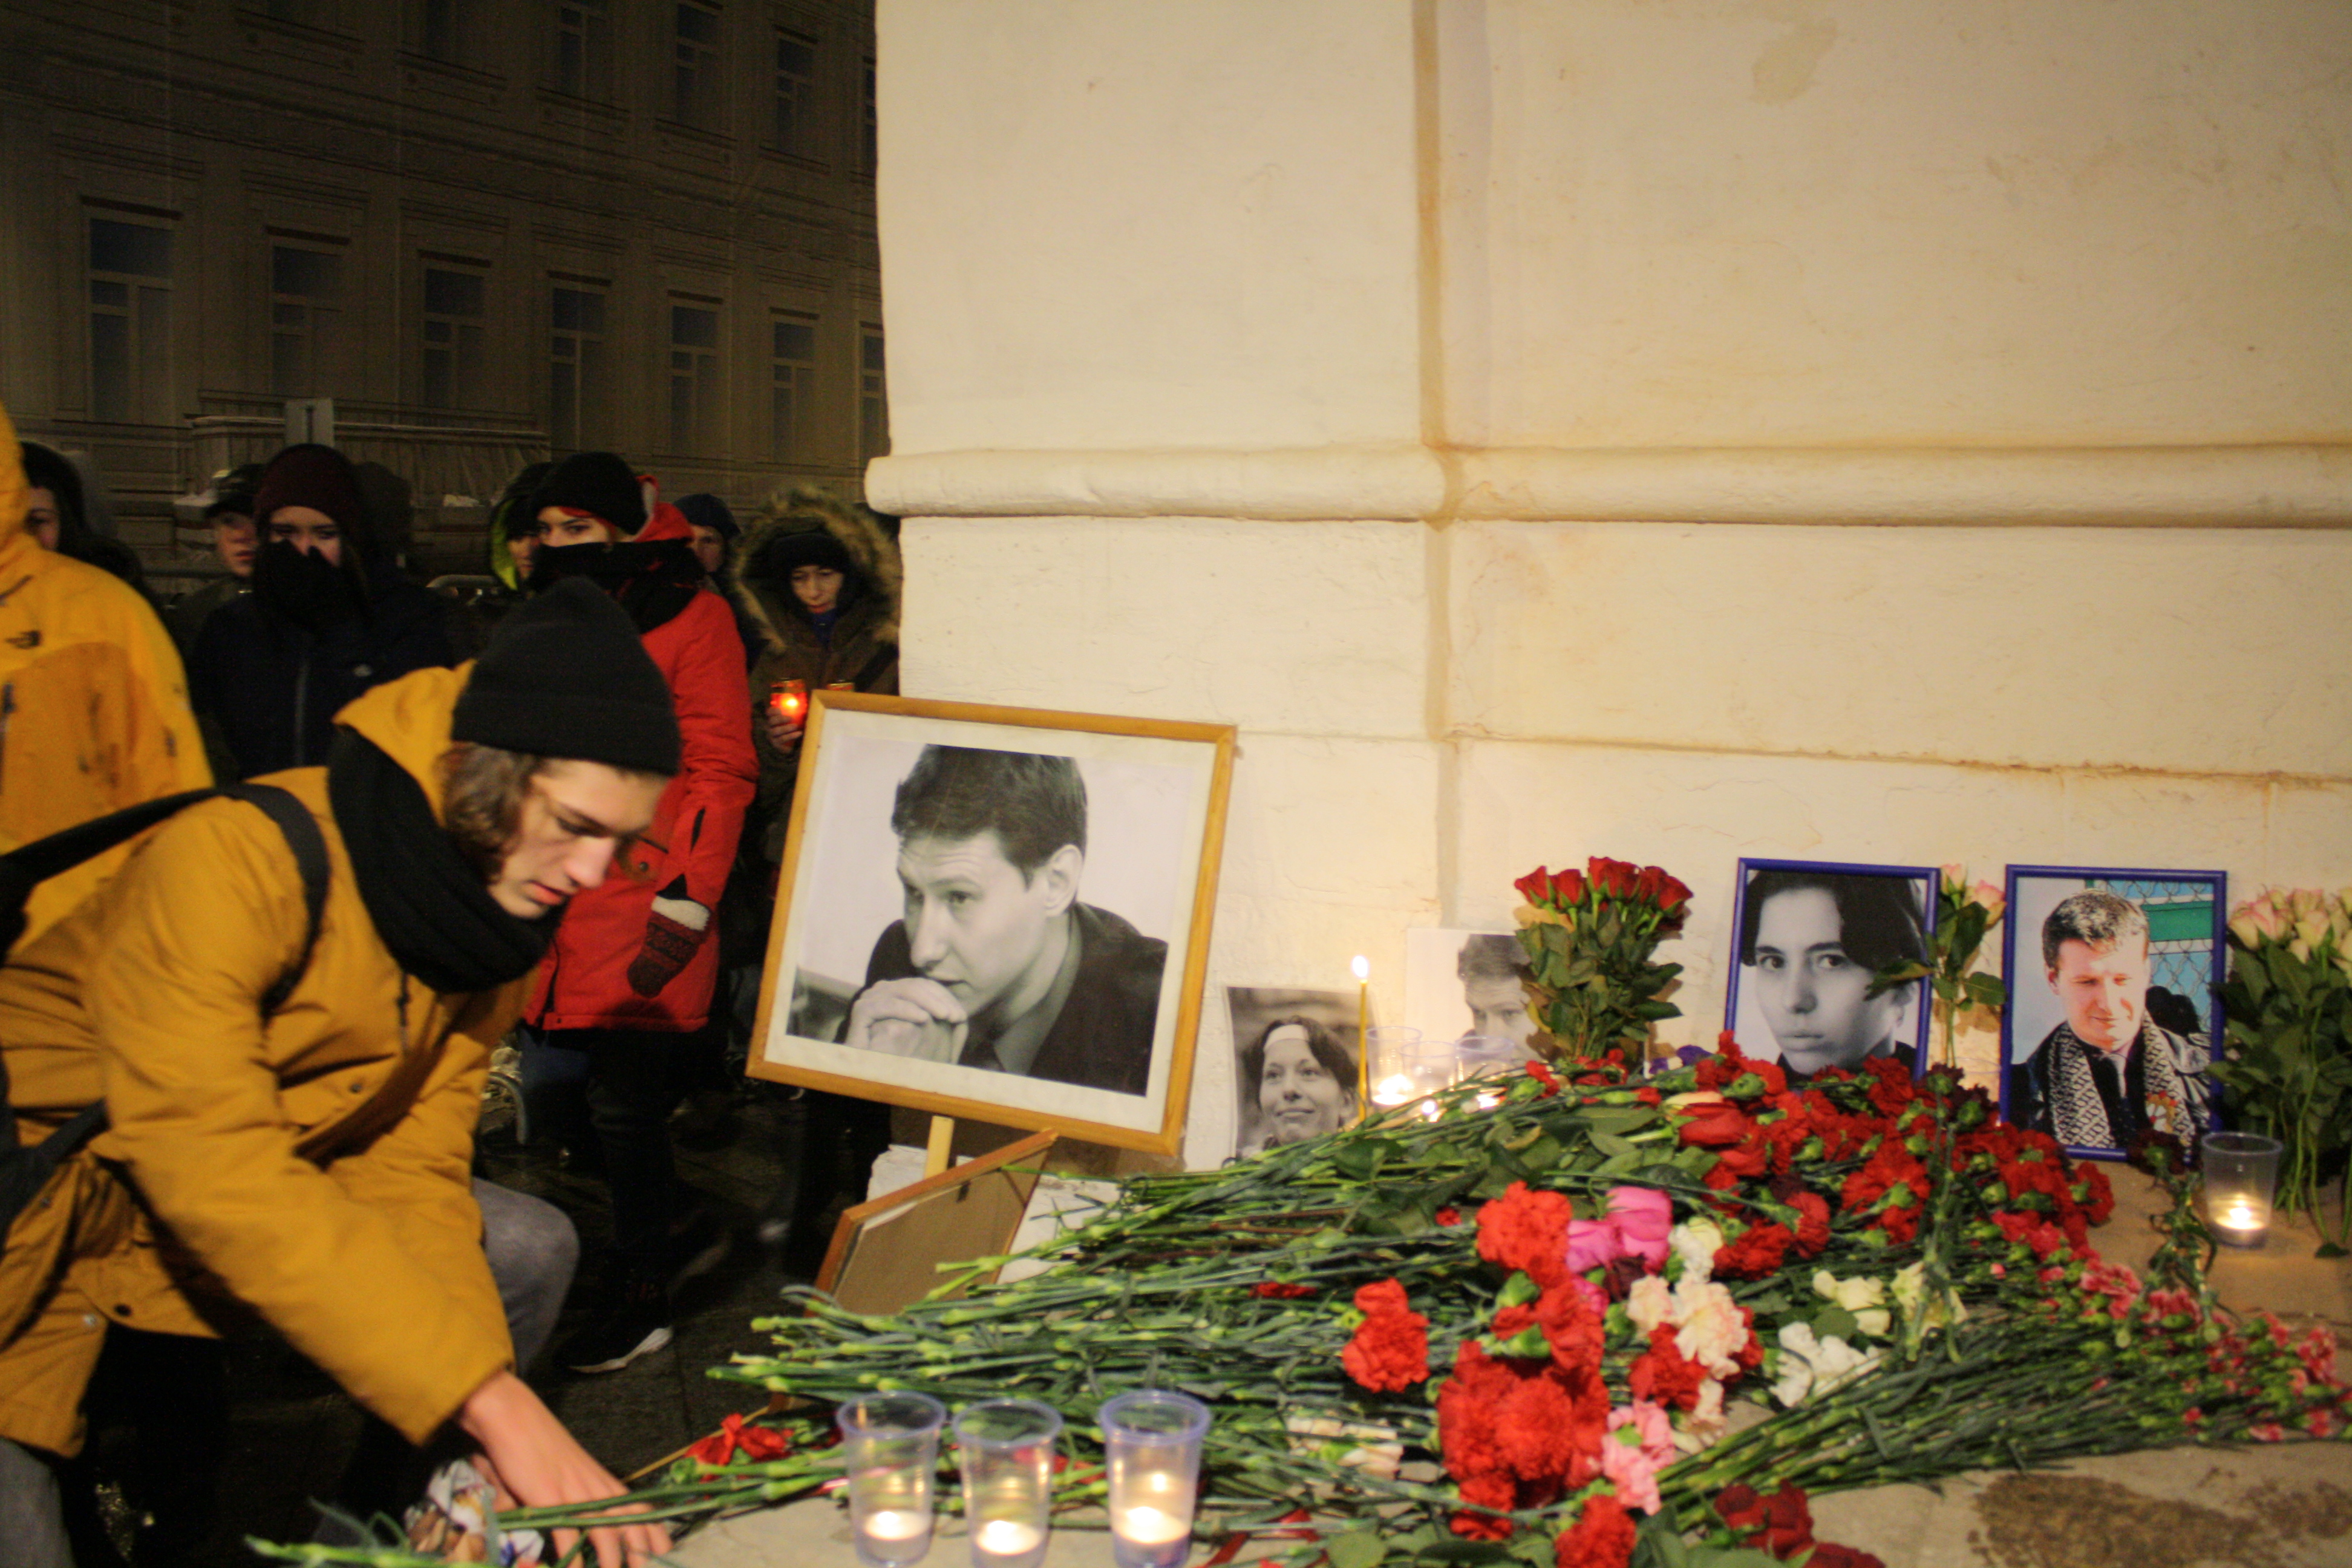 People brought flowers and candles to commemorate the death of Stanislav Markelov and Anastasia Baburova.